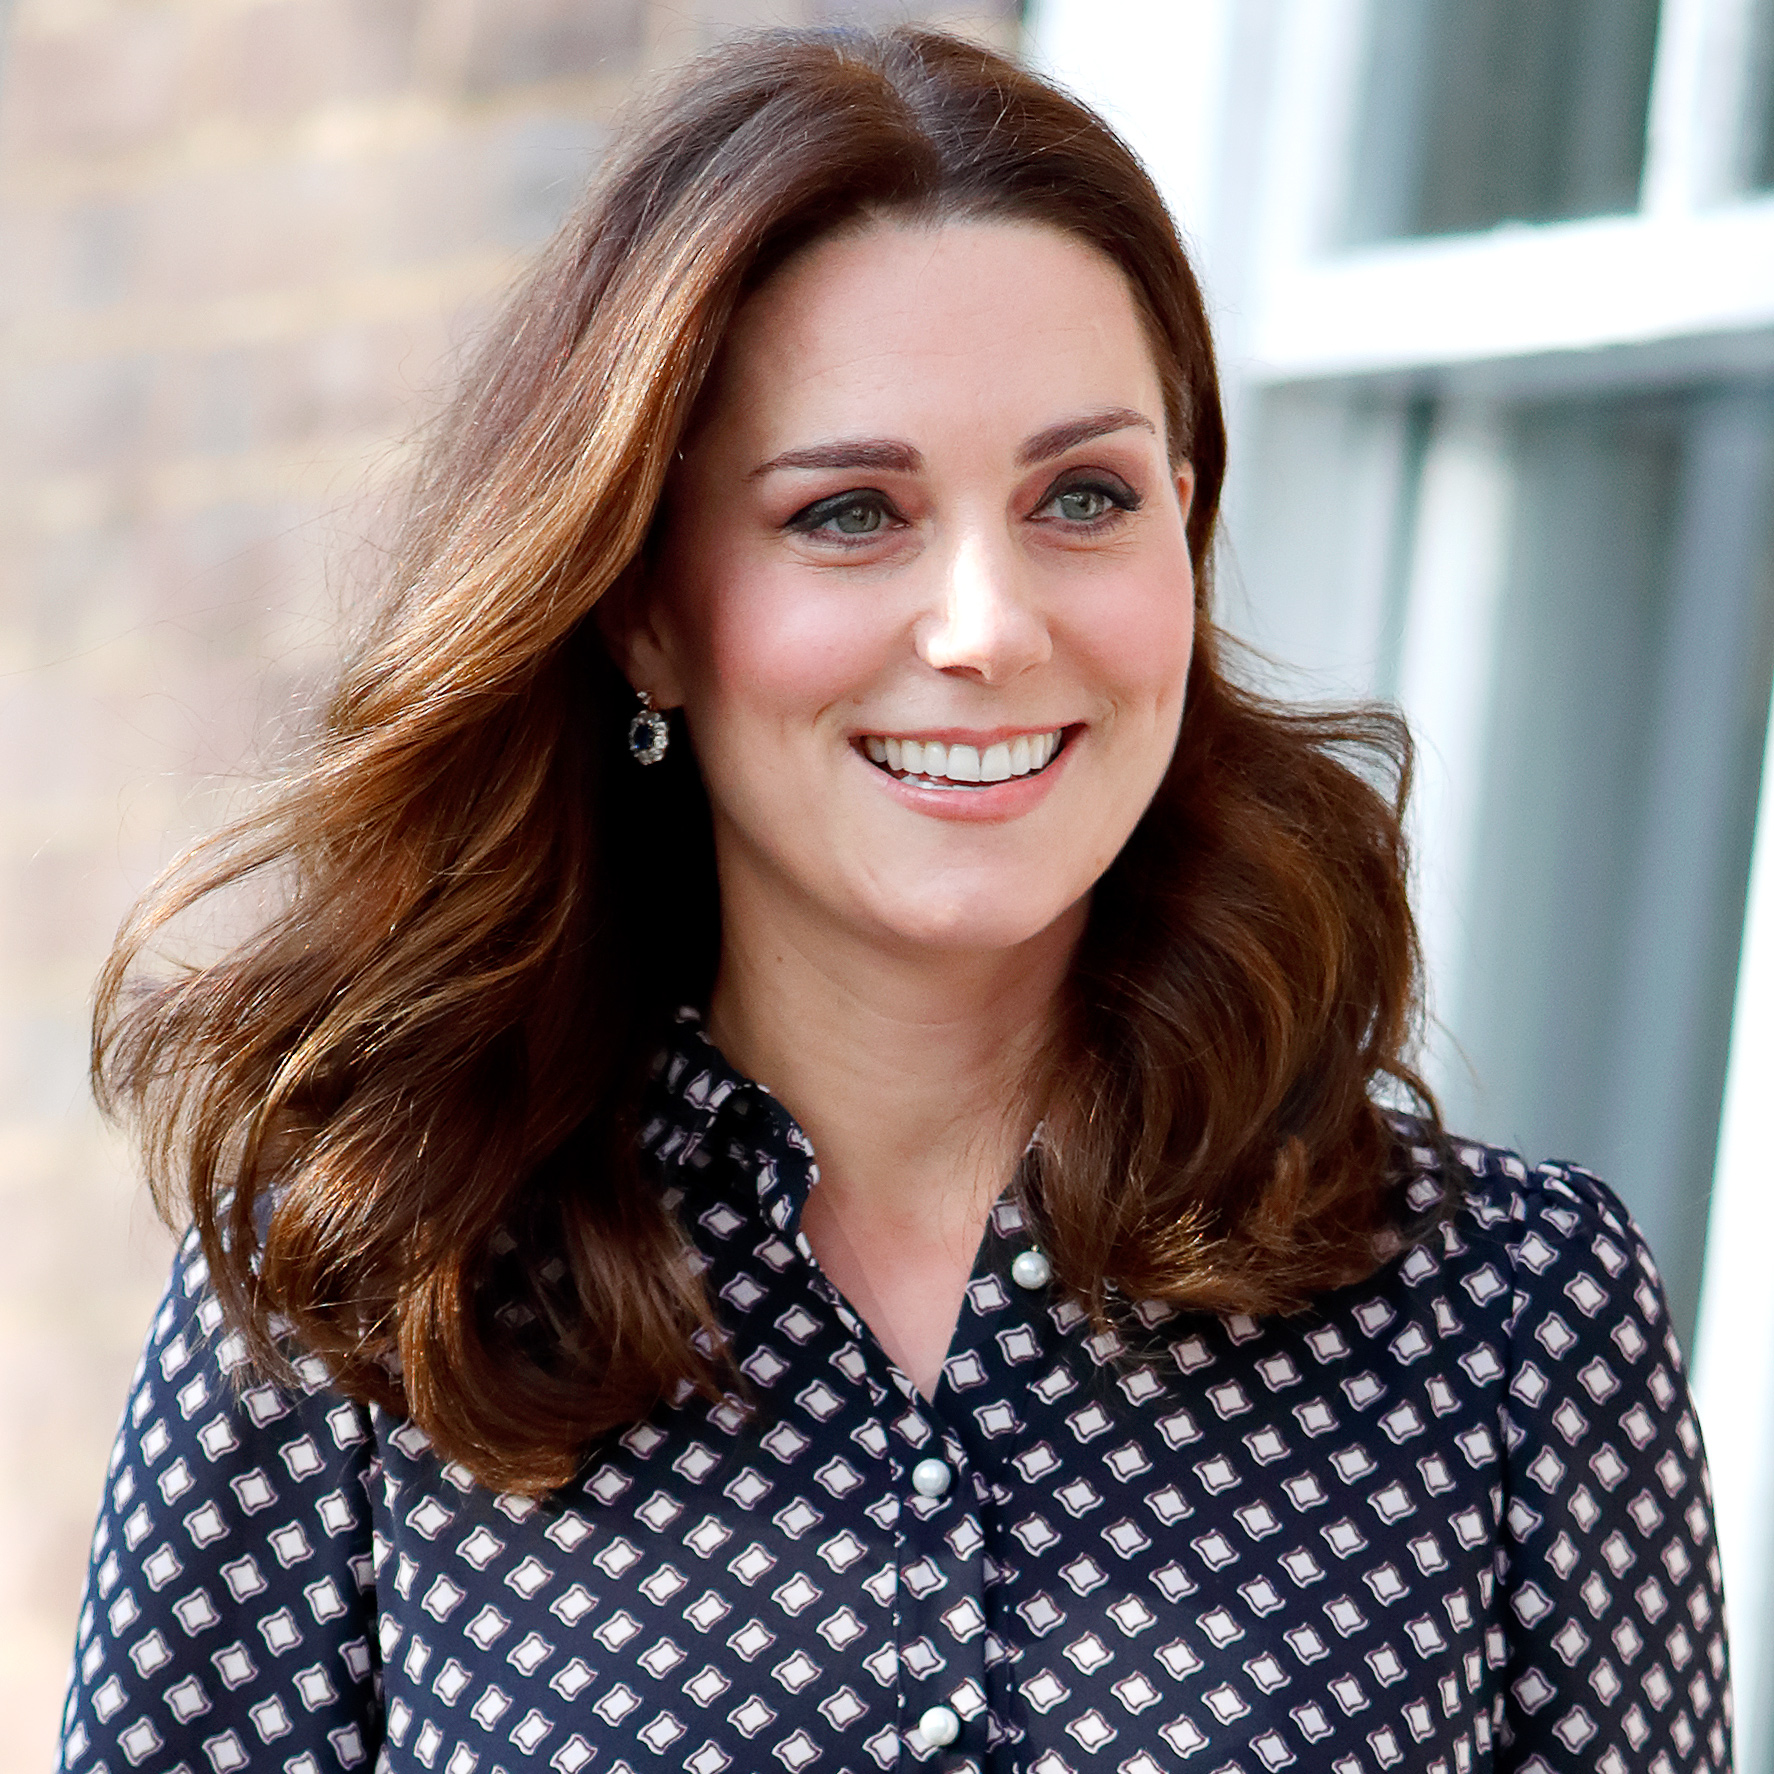 Kate Middleton Changing Looks 2018 - Slide